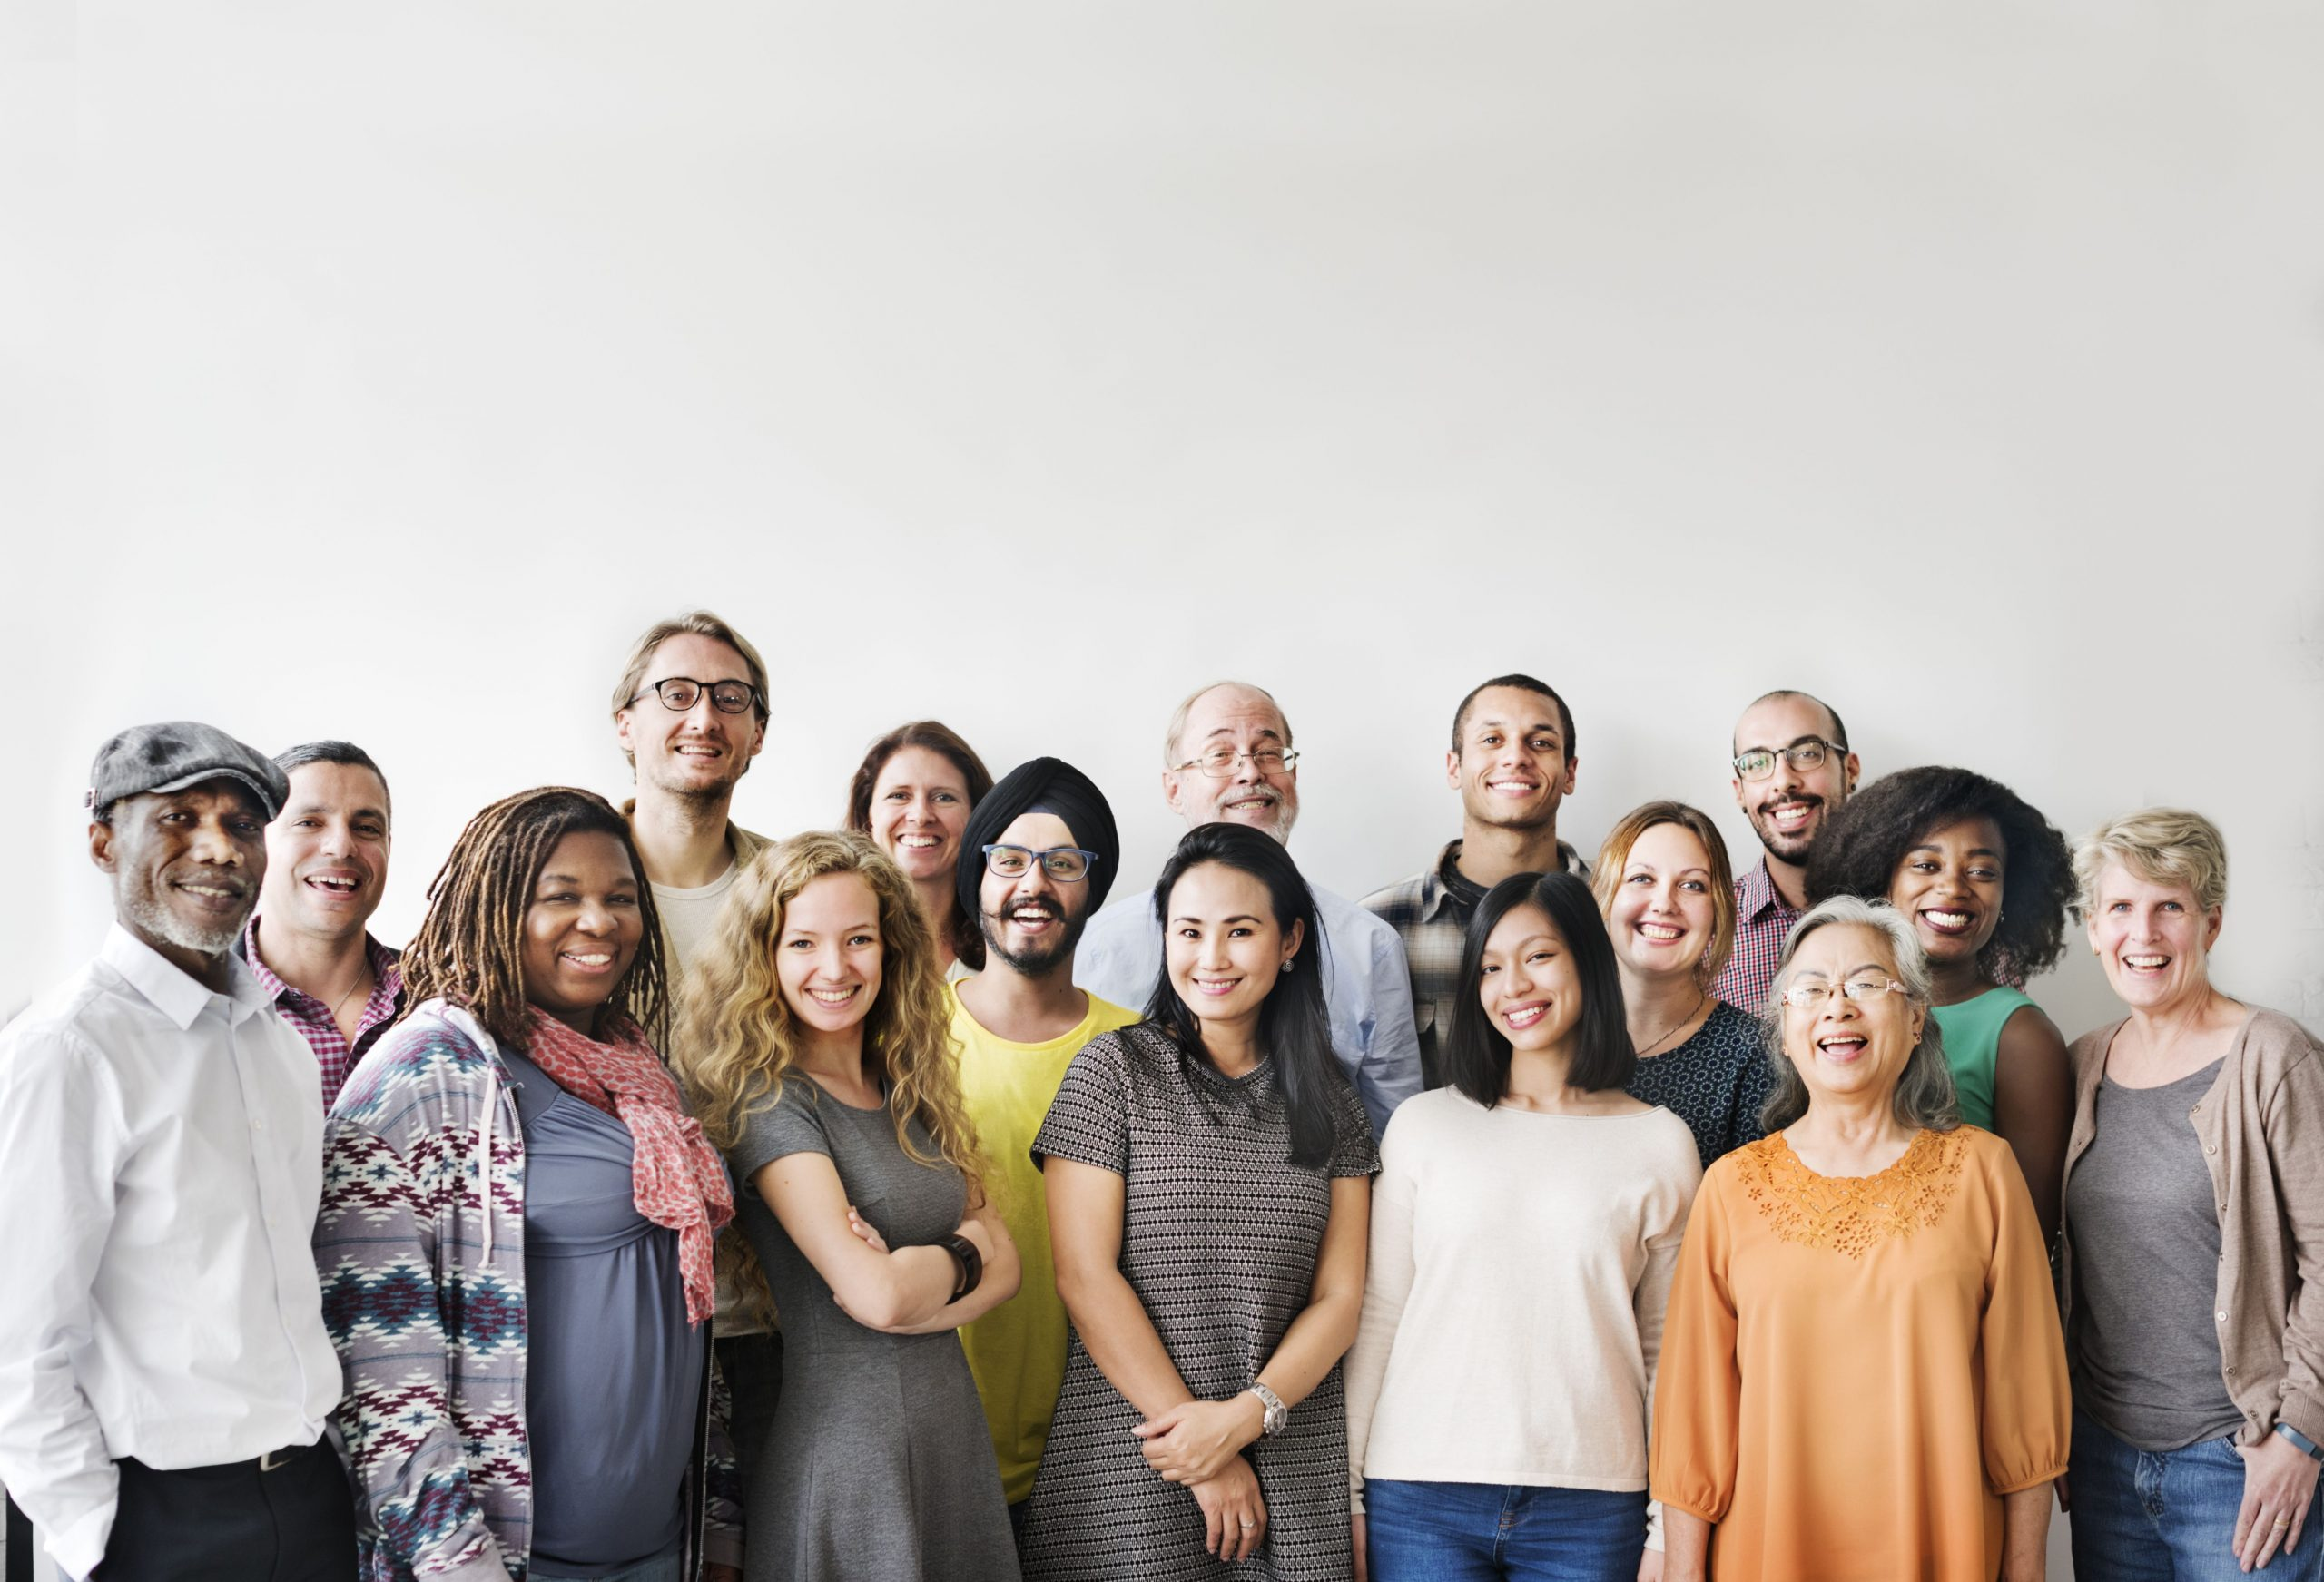 Embed a Culture of Inclusion in Your Business